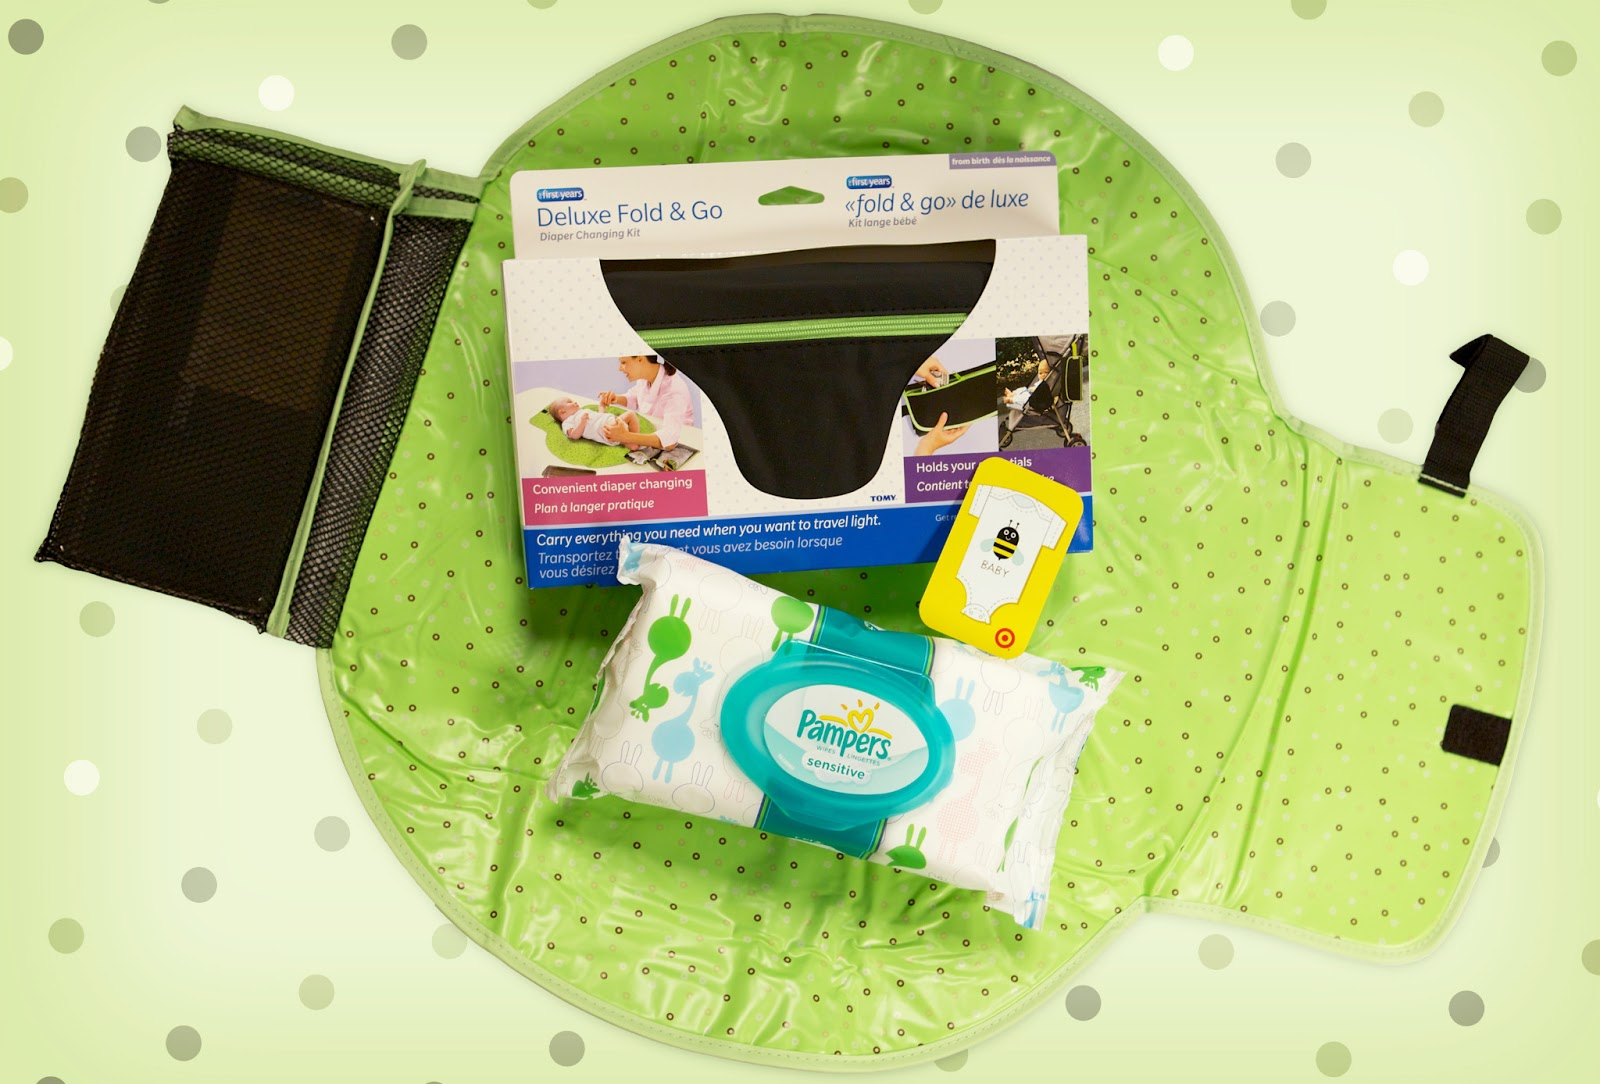 Pampers Swaddlers giveaway